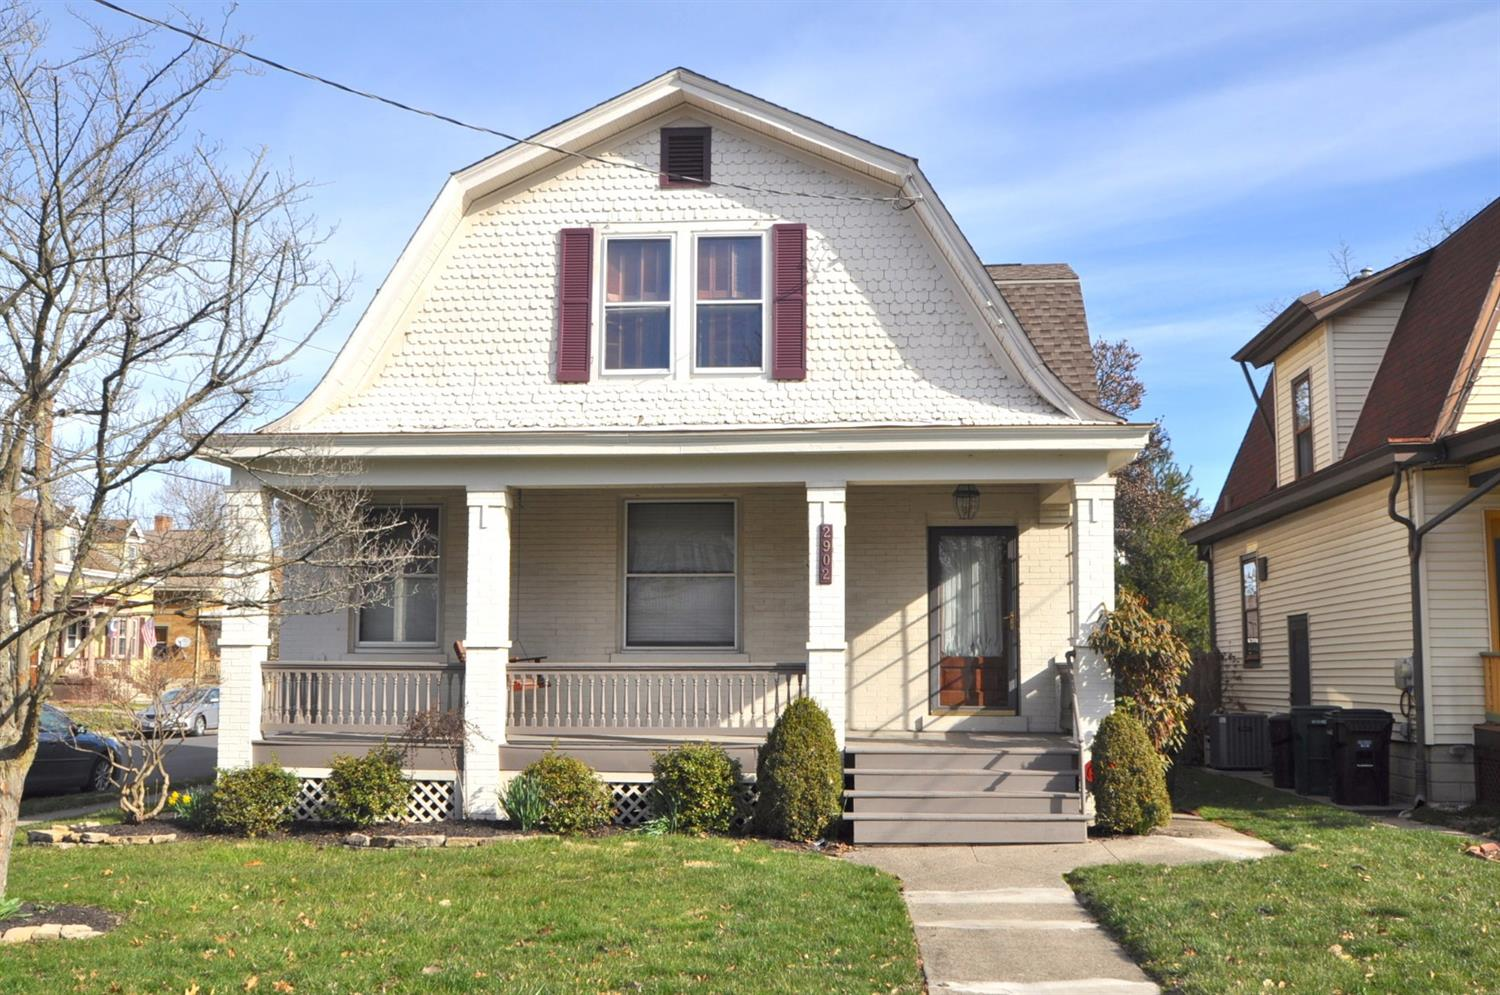 2902 Minot Ave Oakley Oh 45209 Listing Details Mls